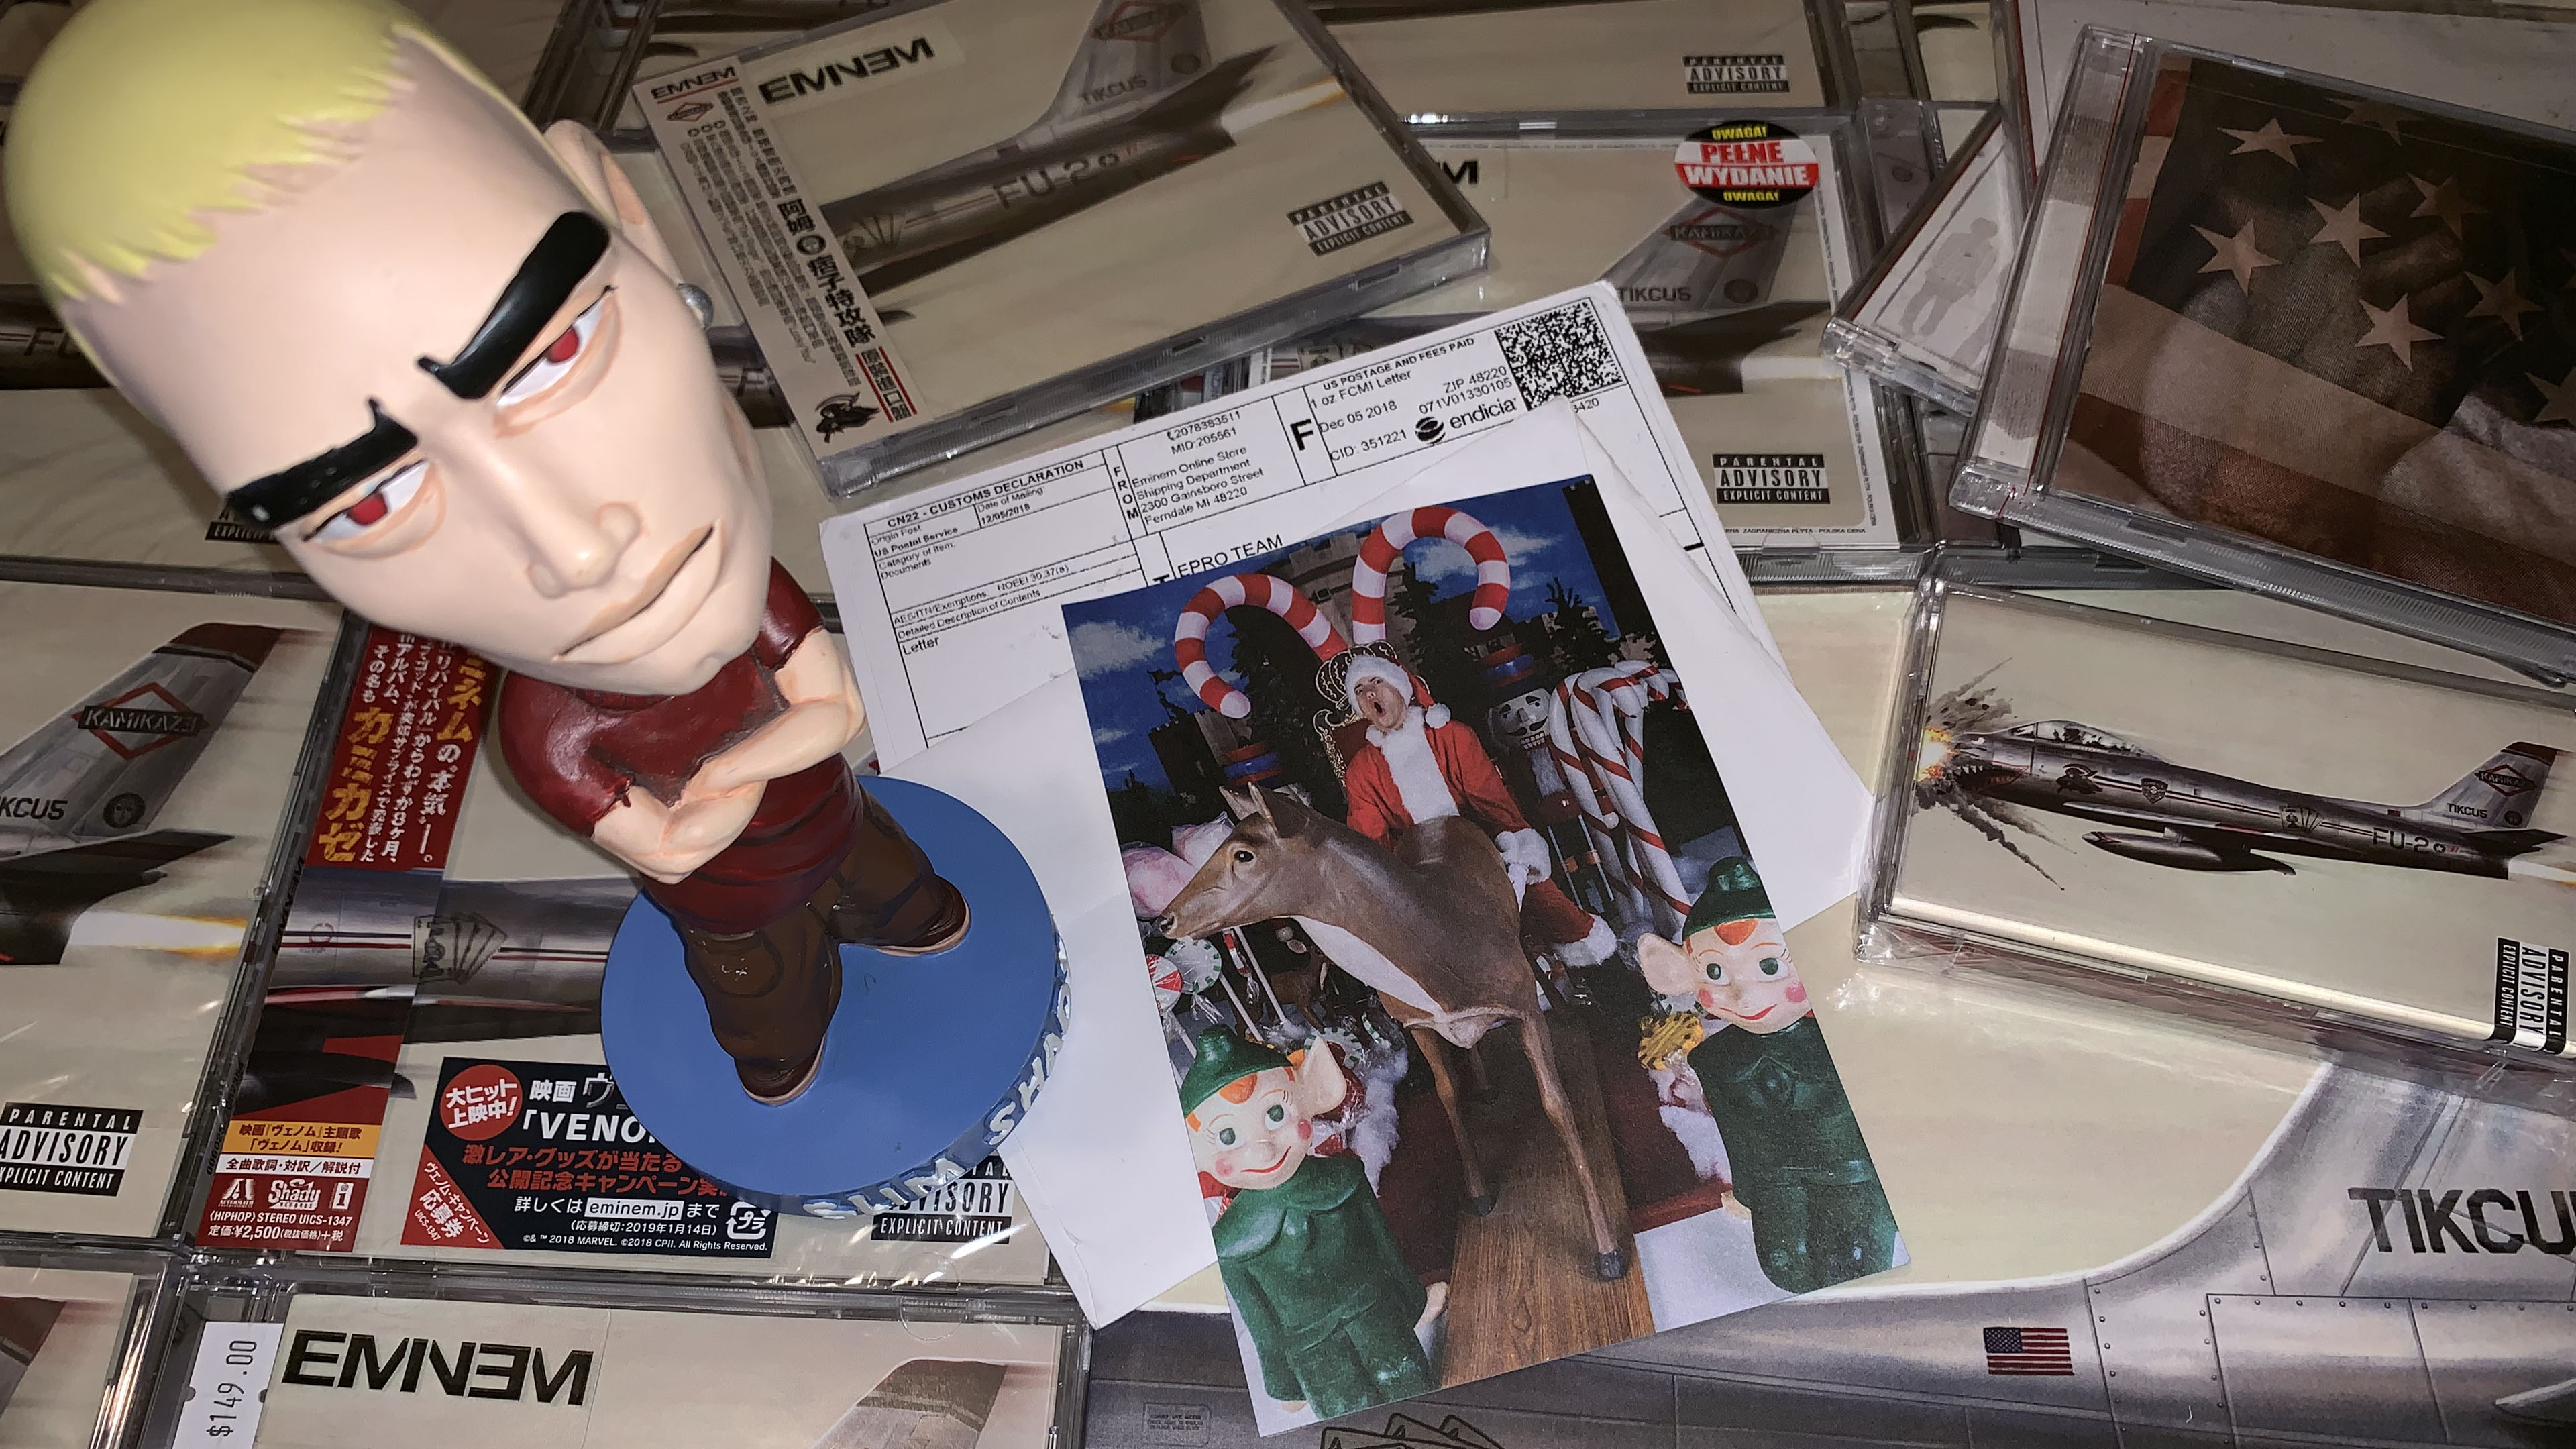 Eminem sent Christmas cards to our editorial too! Thanks, Shady. Very pleased!